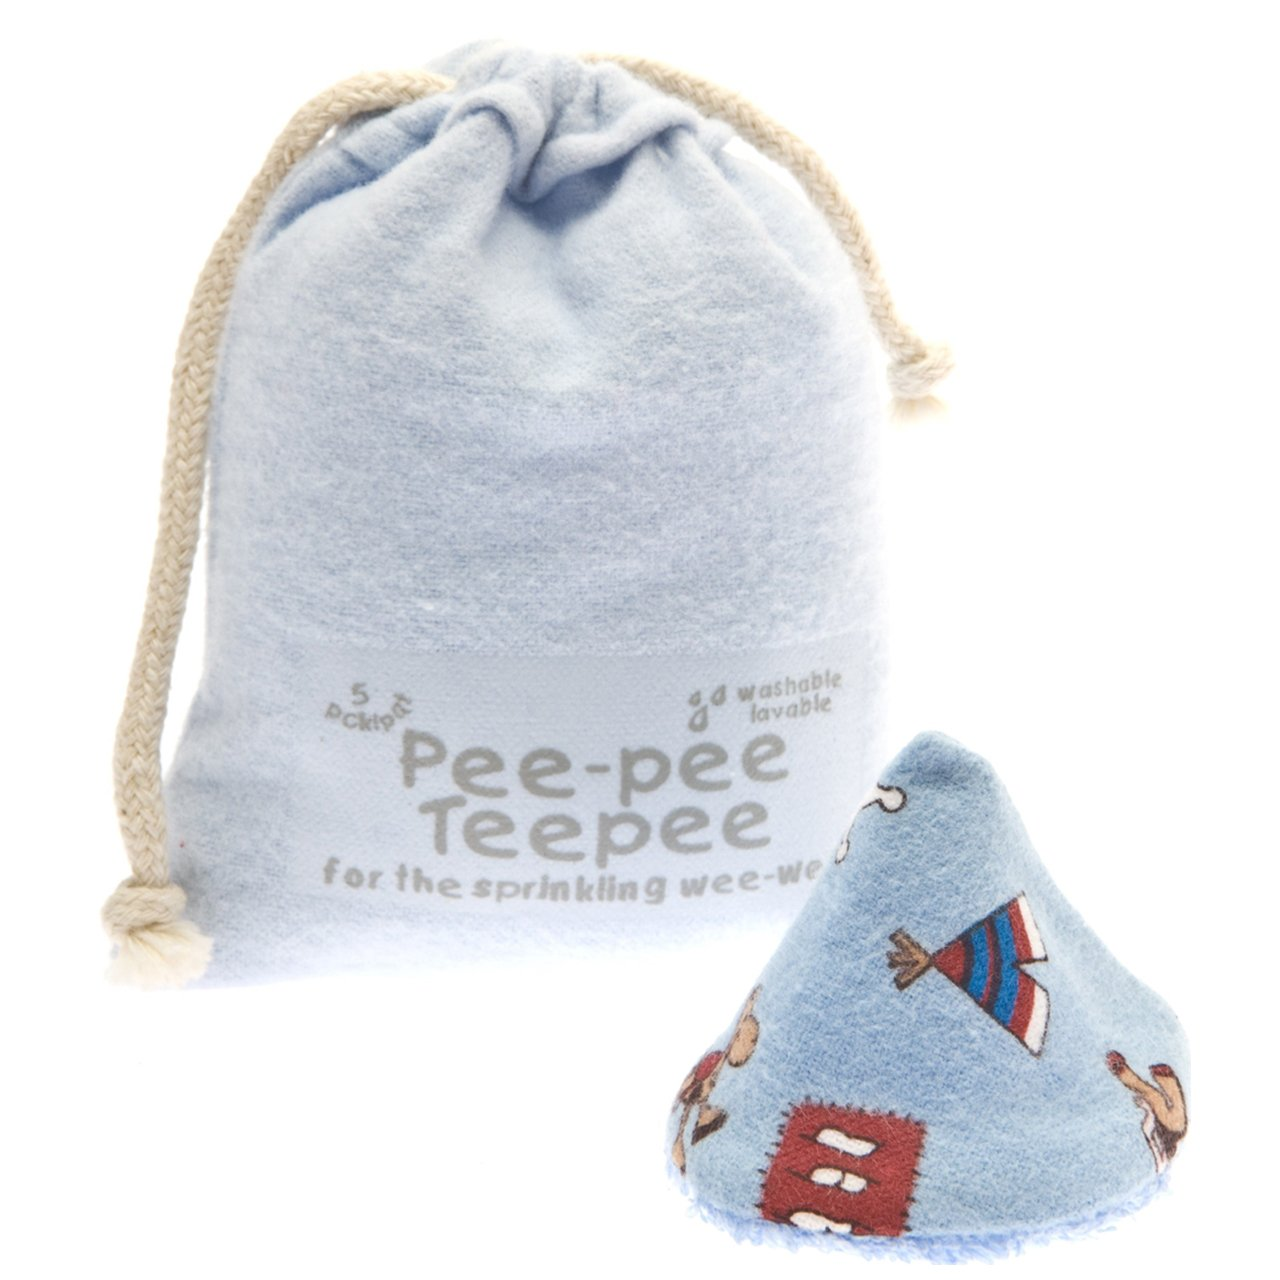 The Peepee Teepee for the Sprinkling WeeWee: Wild West in Laundry Bag